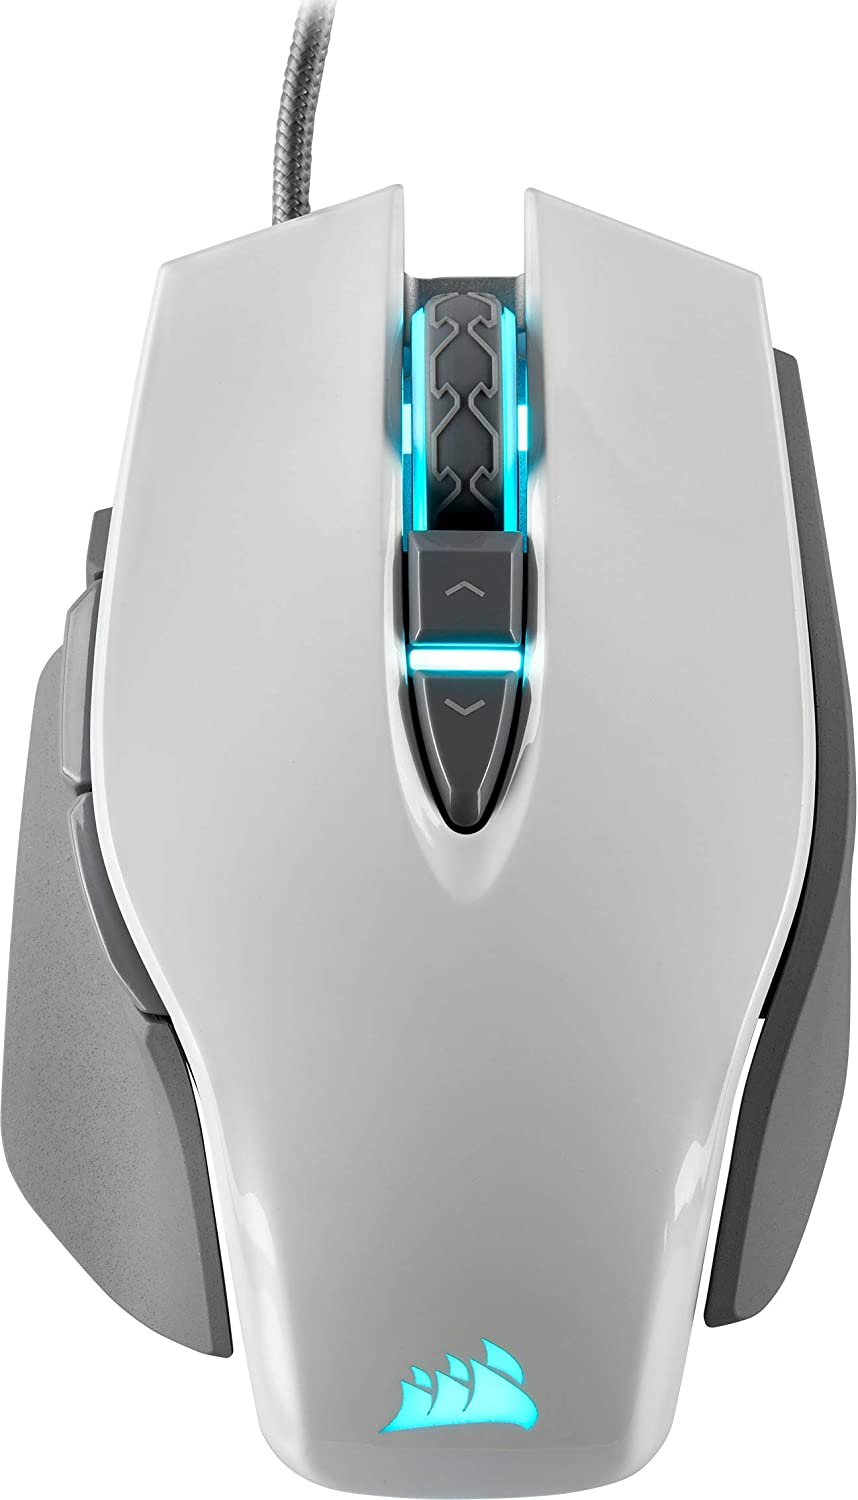 Corsair M65 Elite RGB Óptico FPS